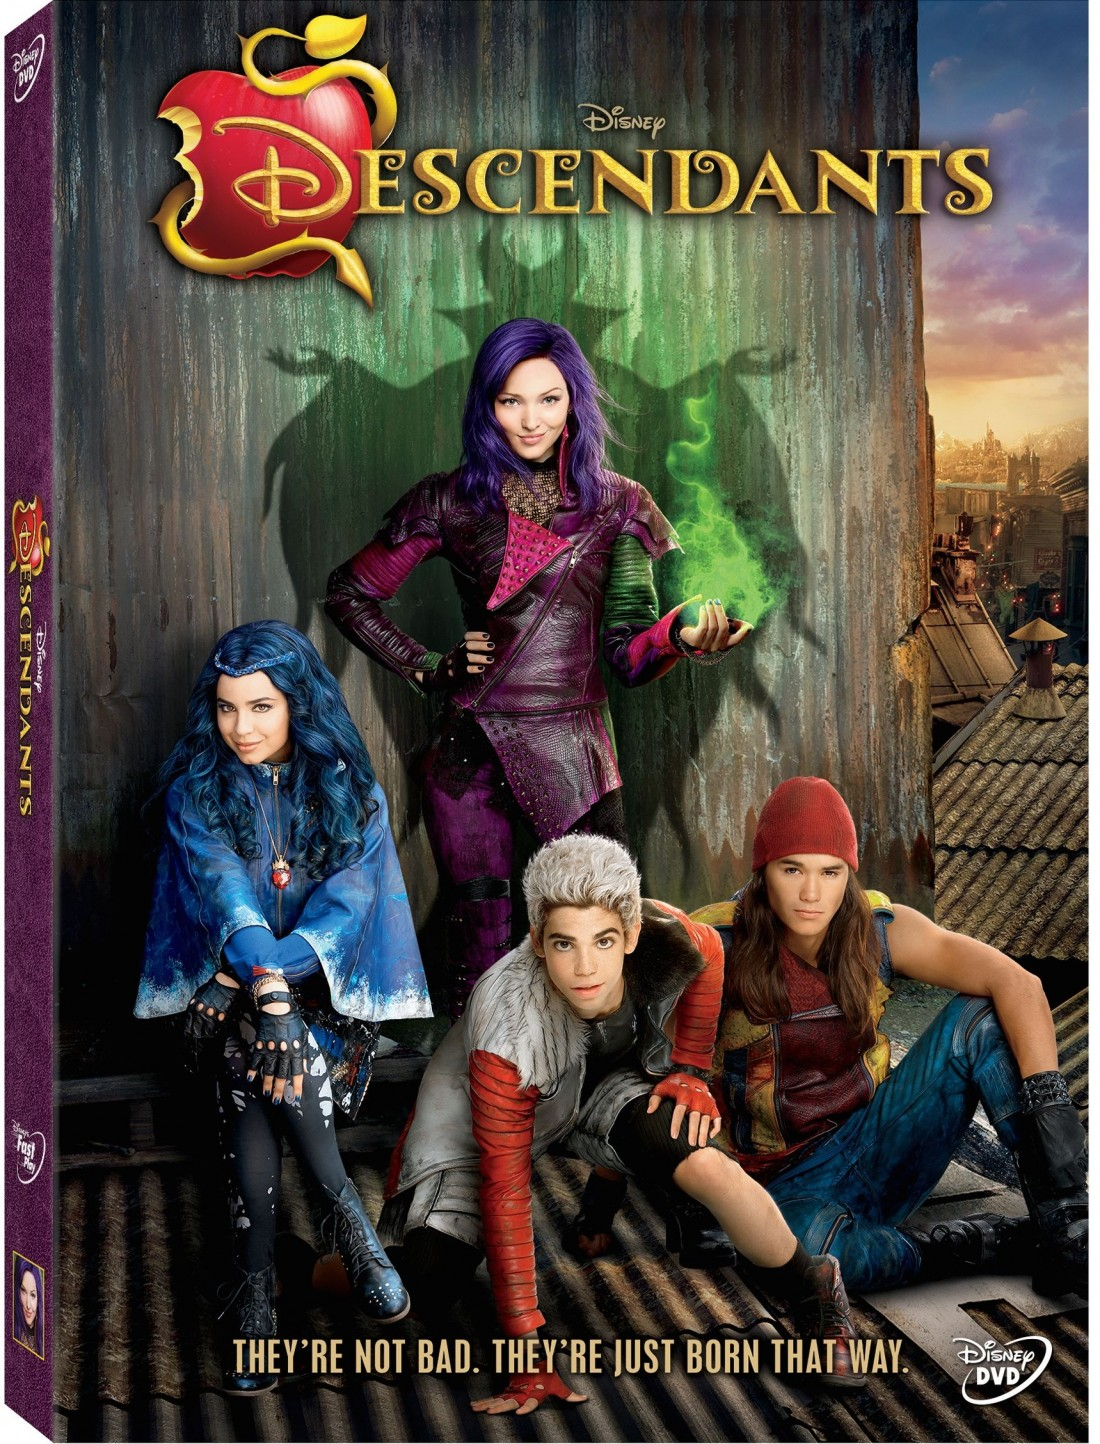 DescendantsDVD